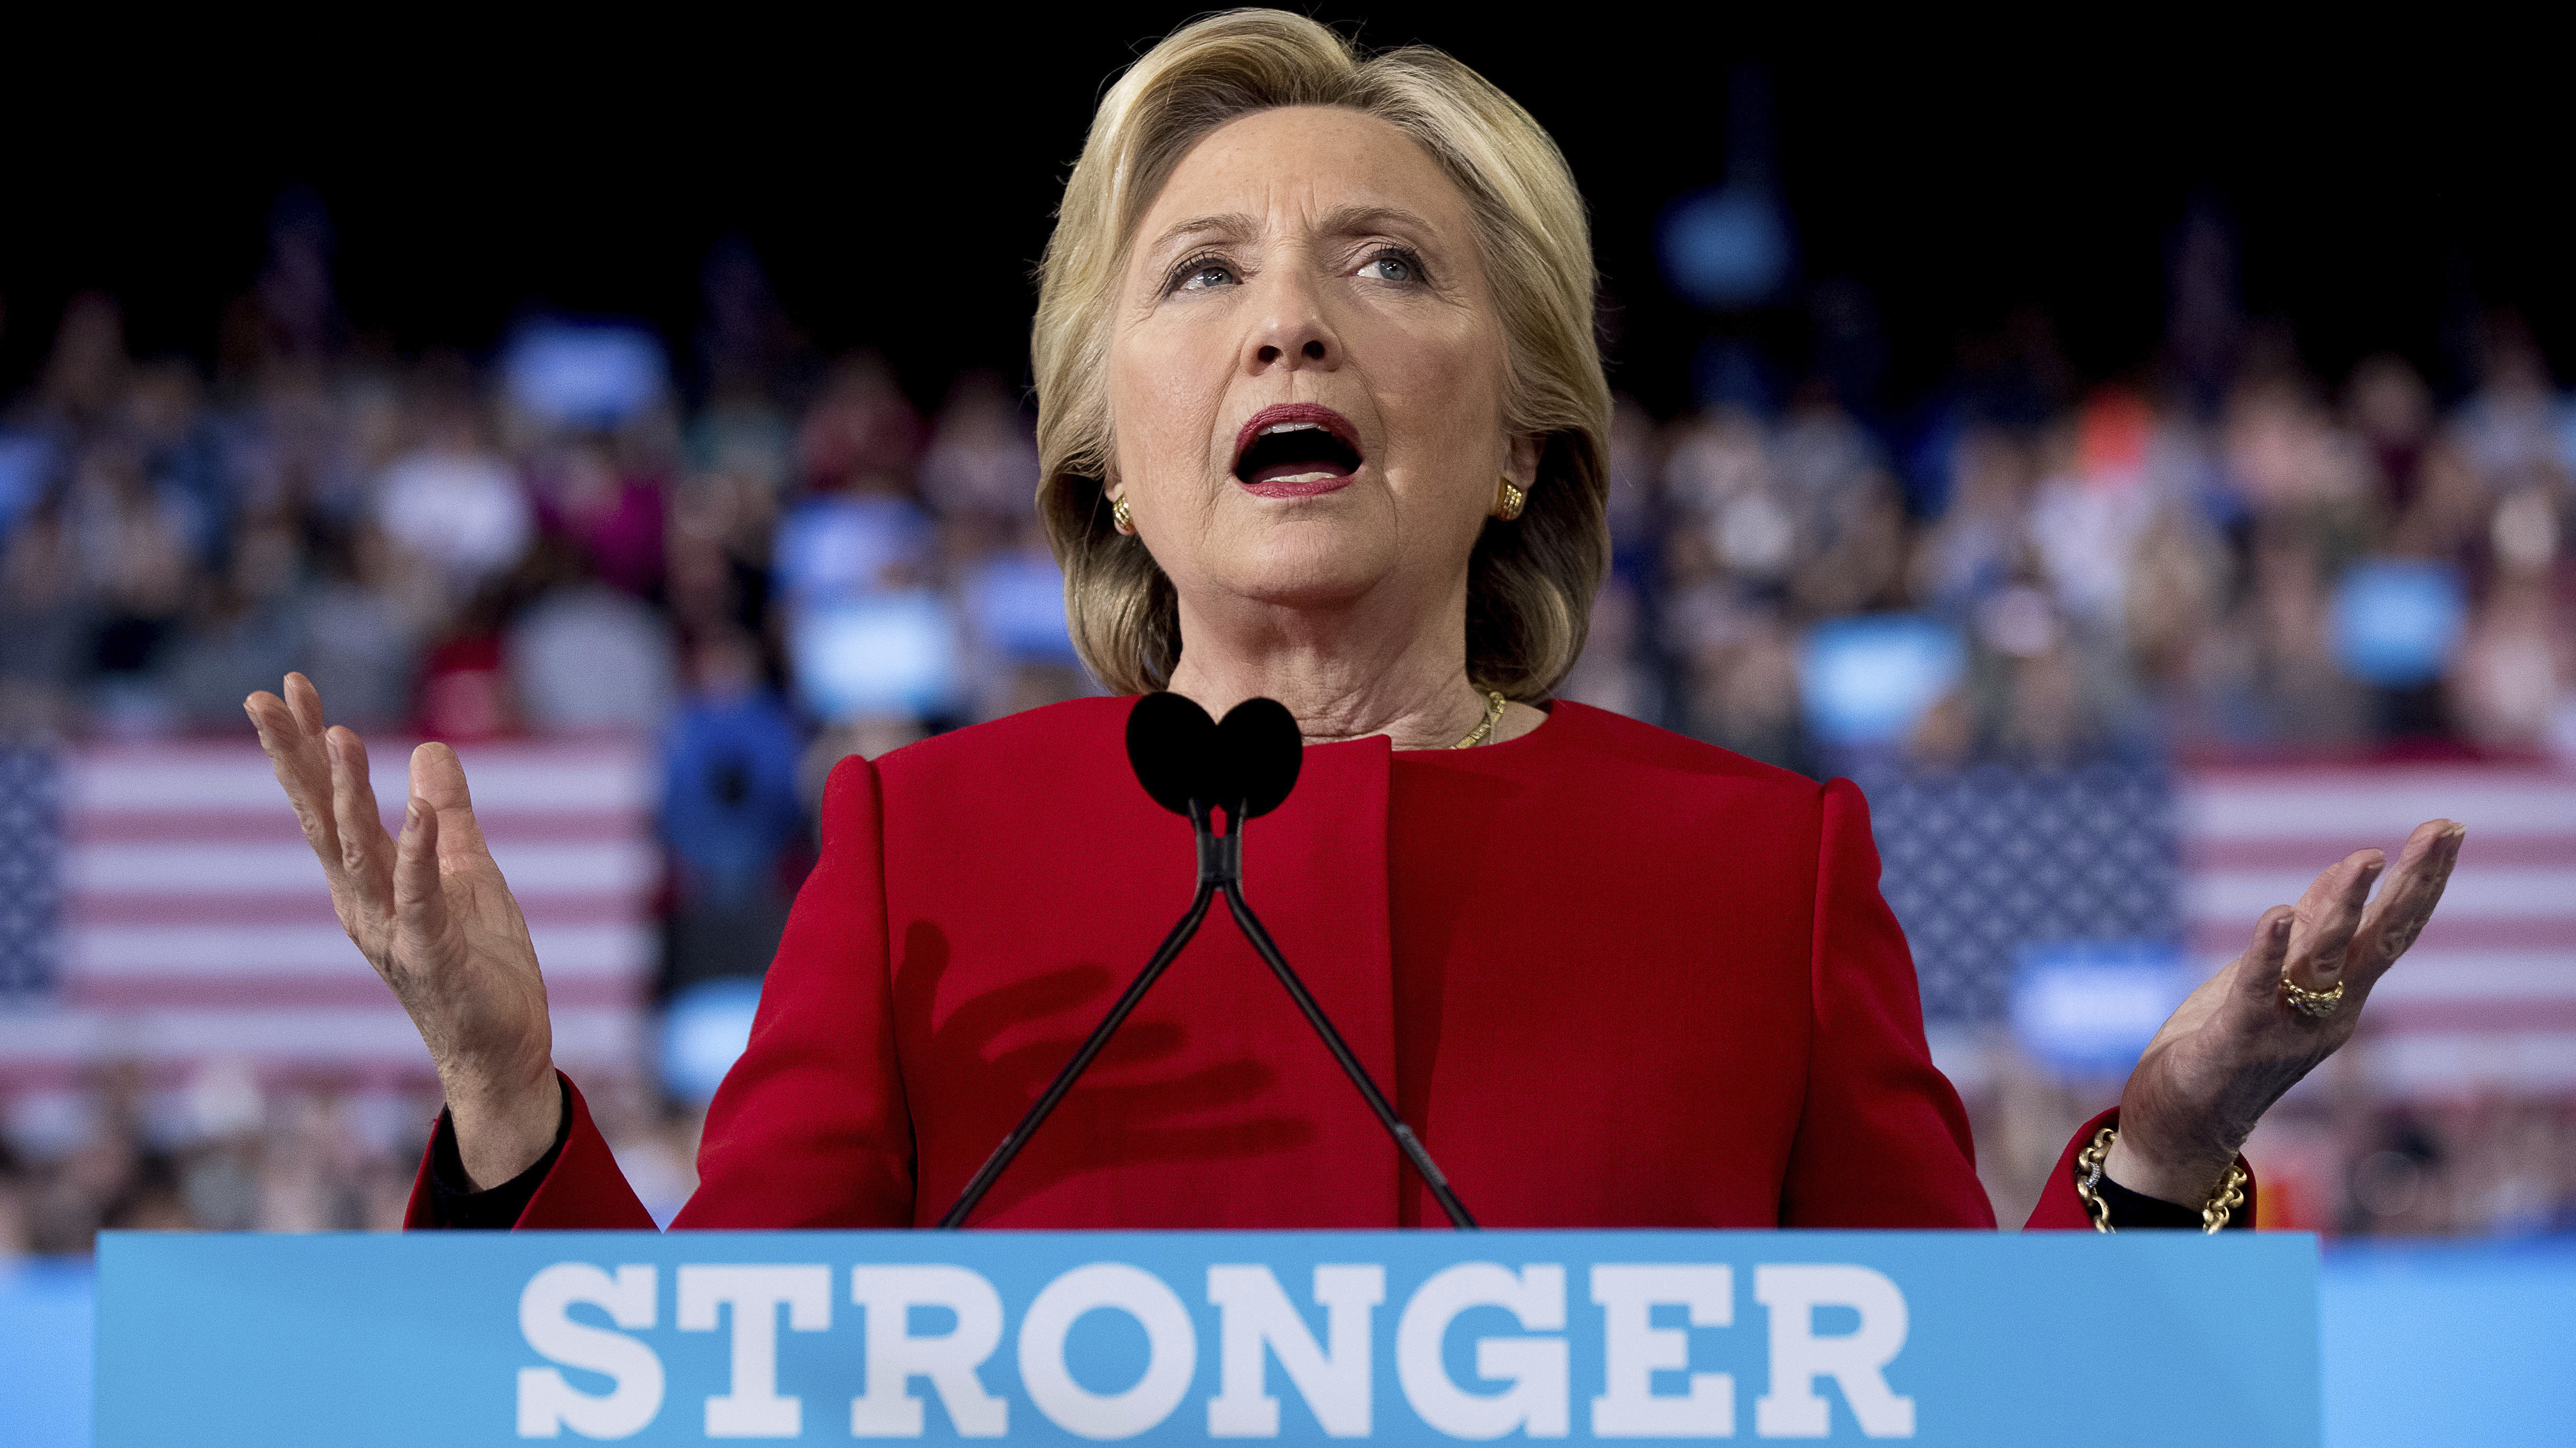 Democratic presidential candidate Hillary Clinton speaks during a campaign rally in Raleigh, N.C., on Nov. 8, 2016.